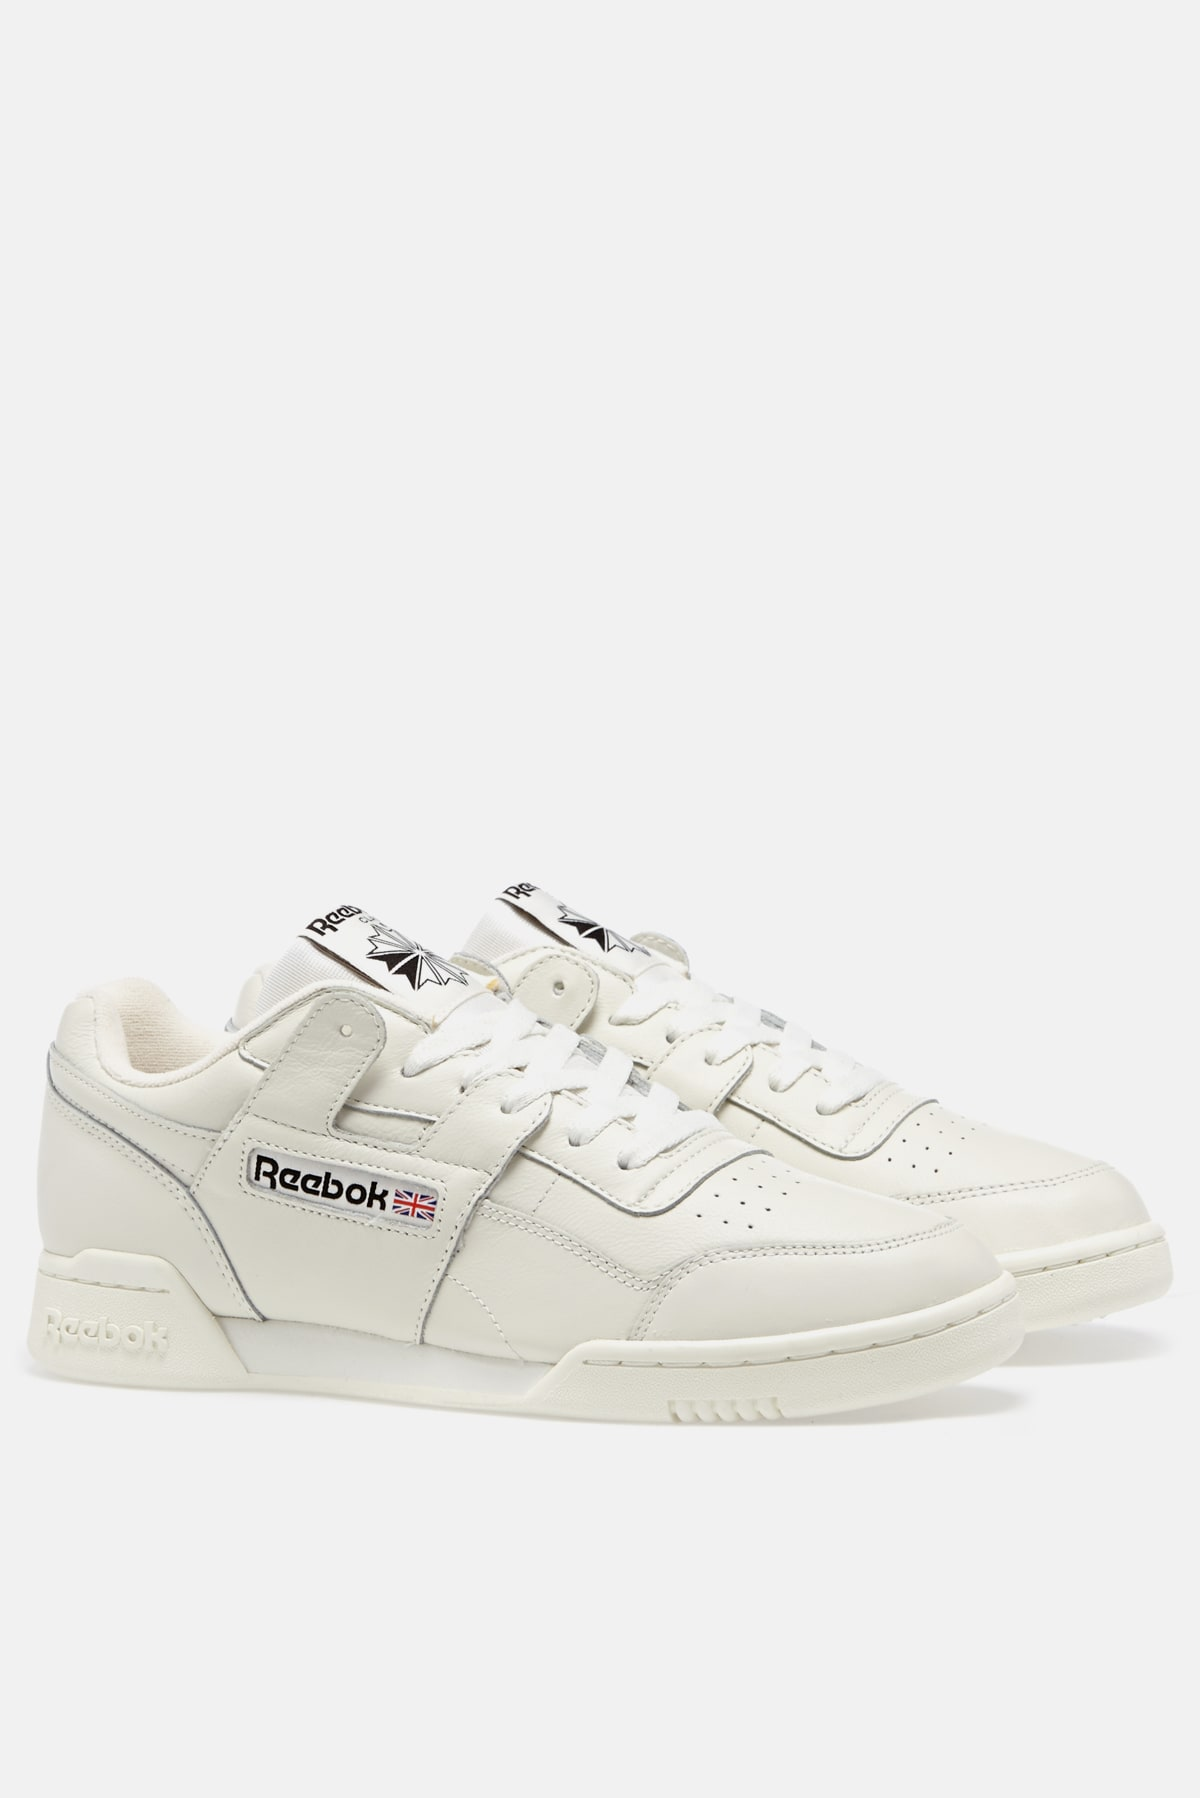 4252b99e719 Reebok classics workout plus mu shoes available from priory jpg 1200x1798  Trainers reebok oxford india polo